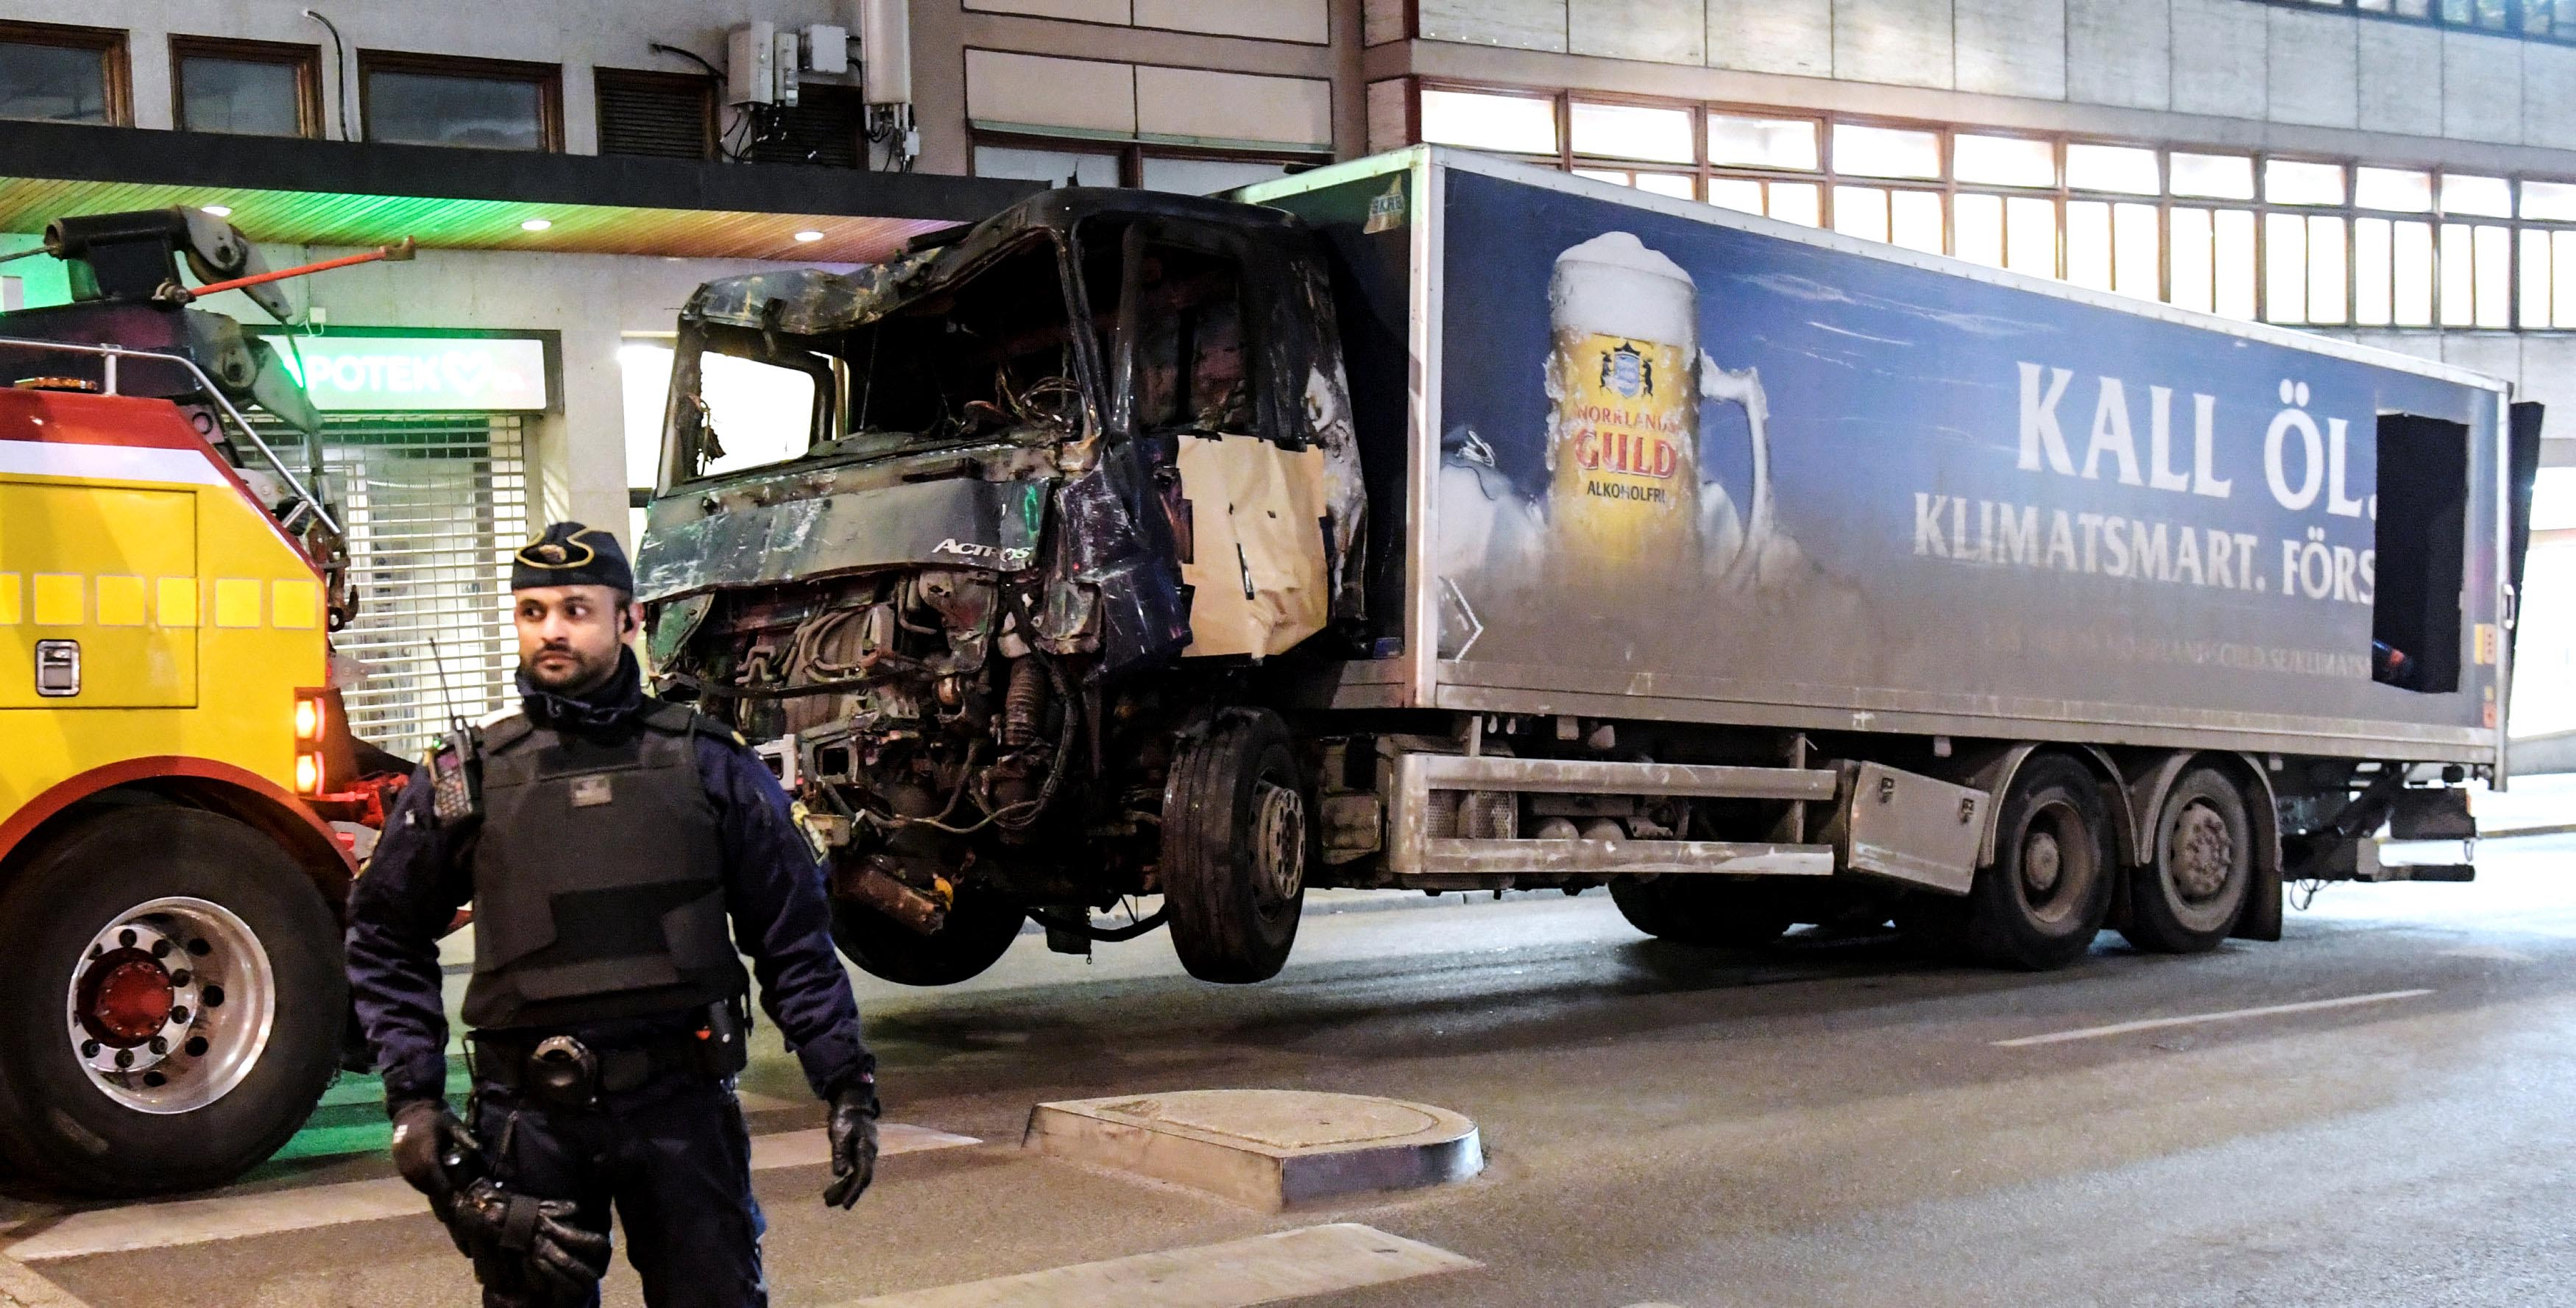 Tow trucks pull away the beer truck that crashed into the department store Ahlens after plowing down the Drottninggatan Street in central Stockholm, Sweden, on April 8, 2017. Photo: Maja Suslin/TT News Agency/via Reuters